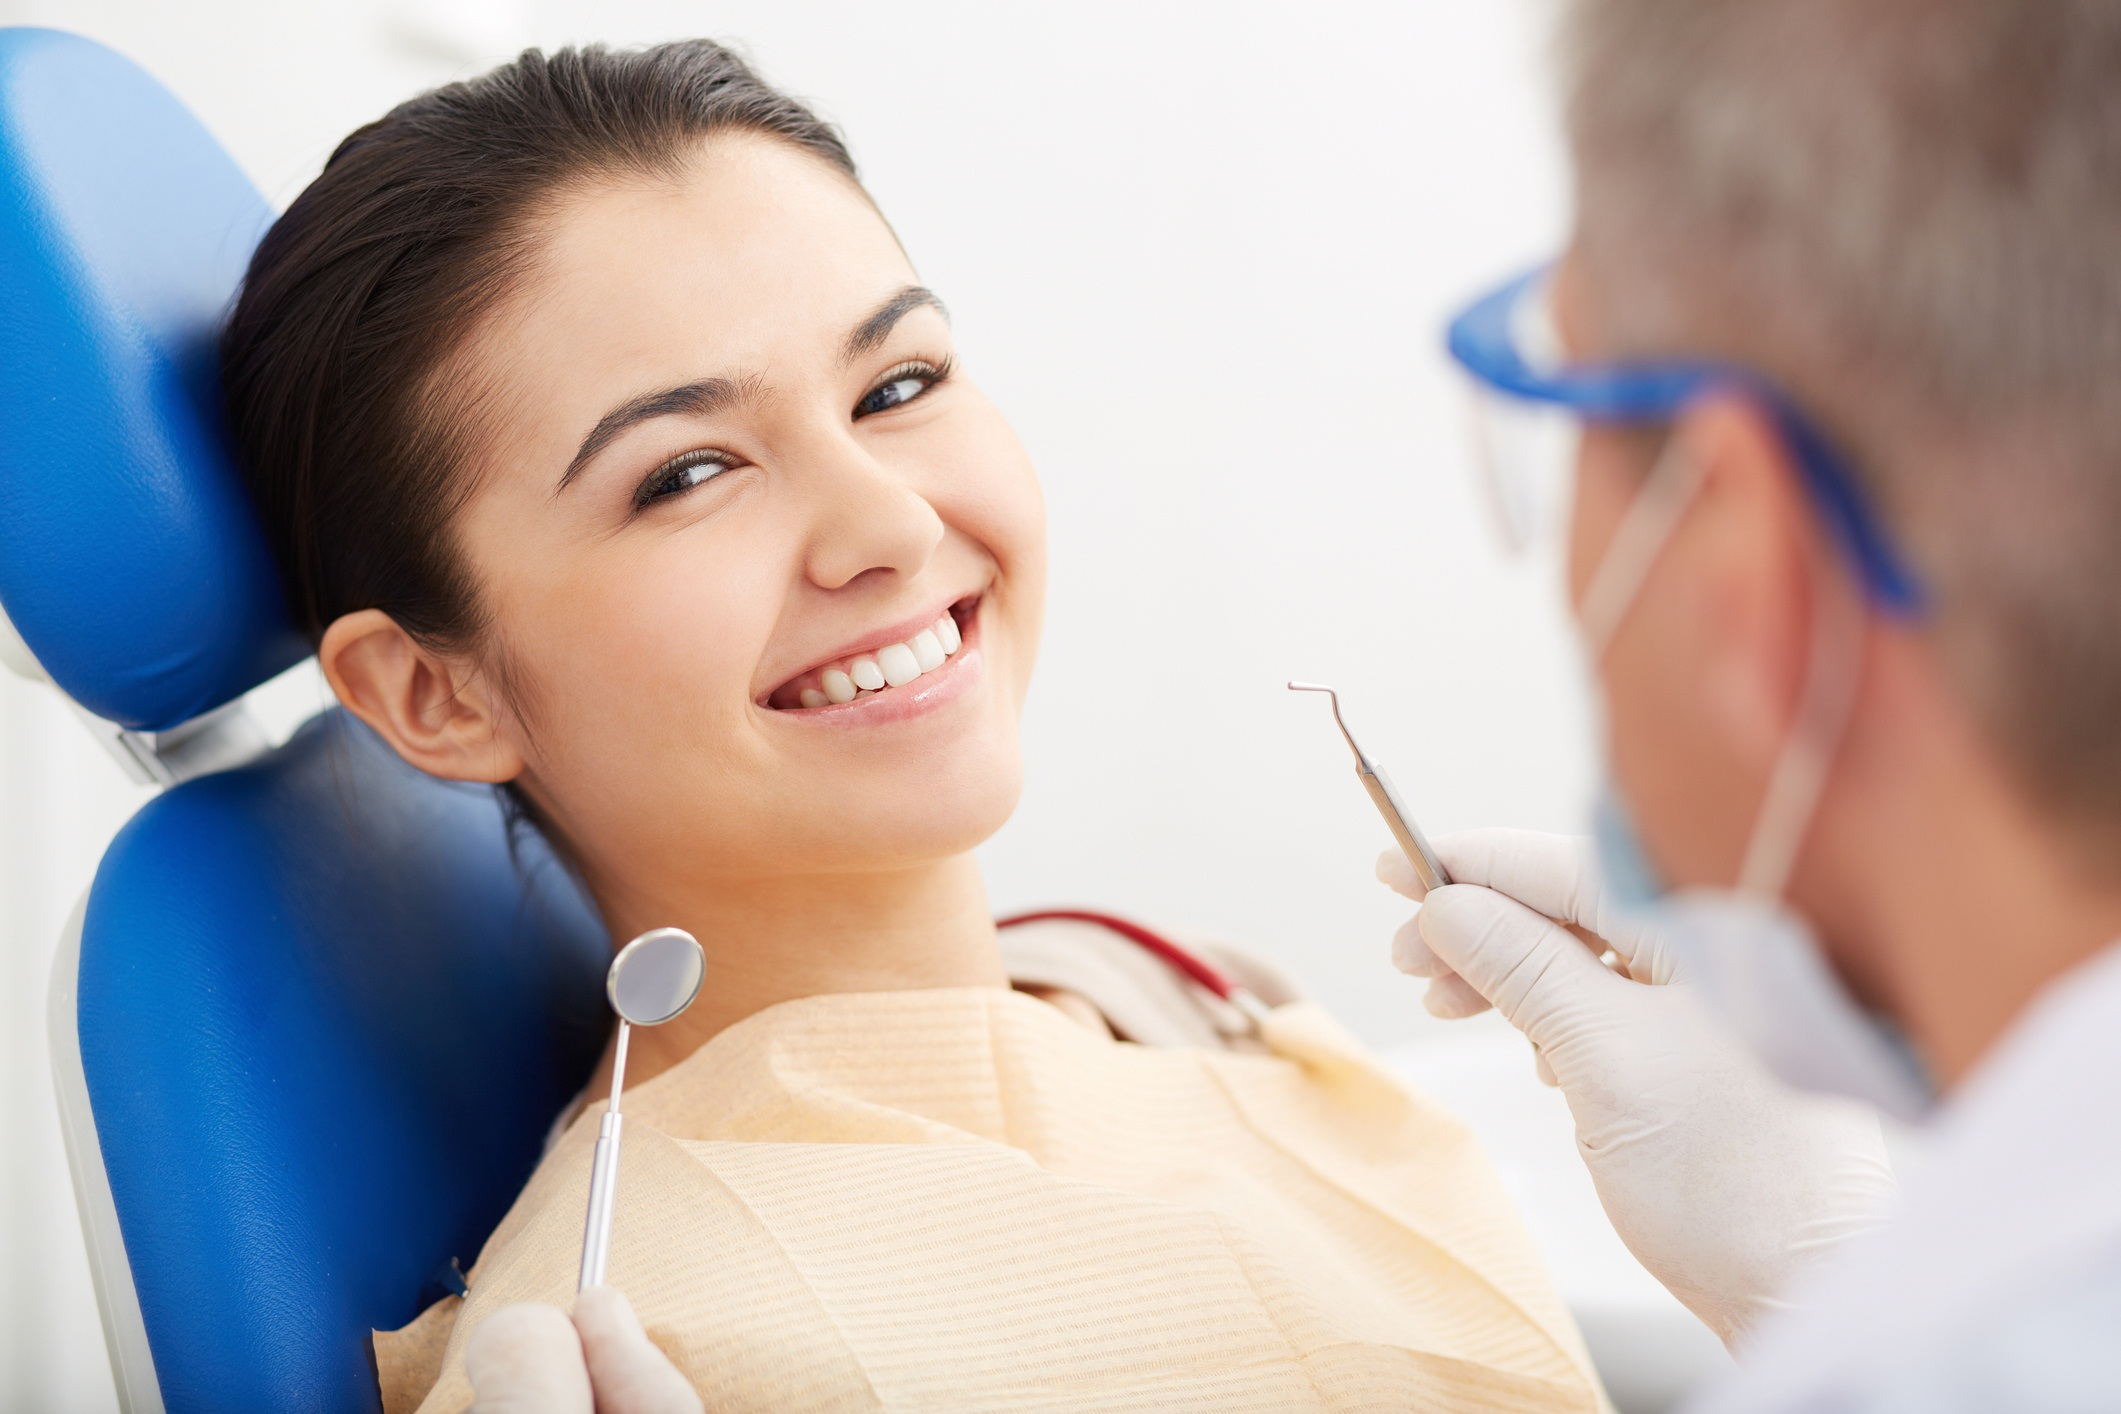 How a General Dentist Can Help to Improve Your Oral Health